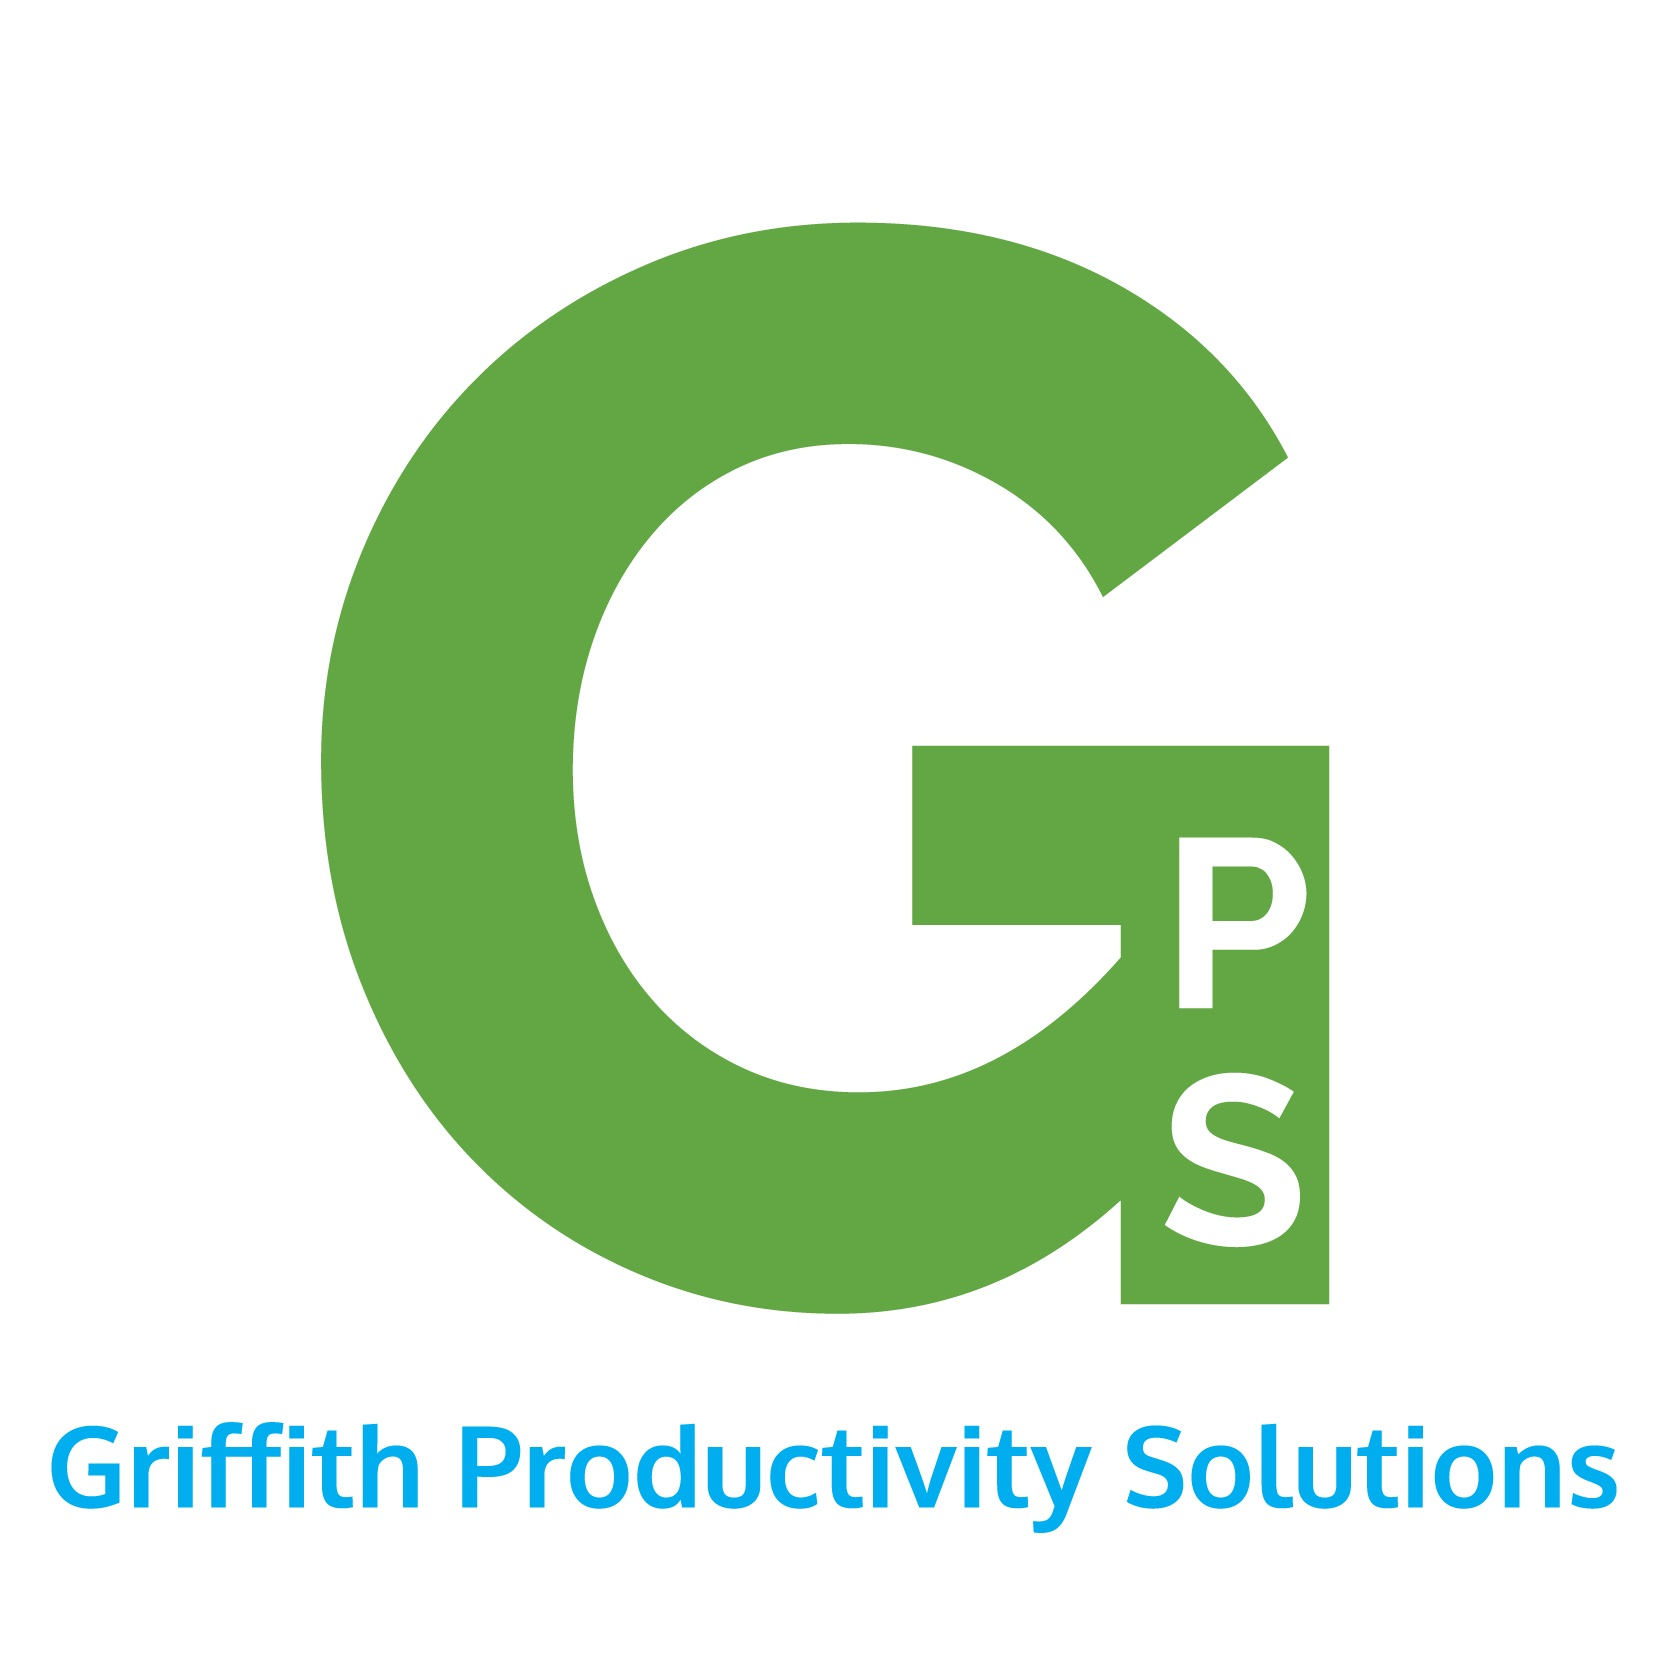 Griffith Productivity Solutions